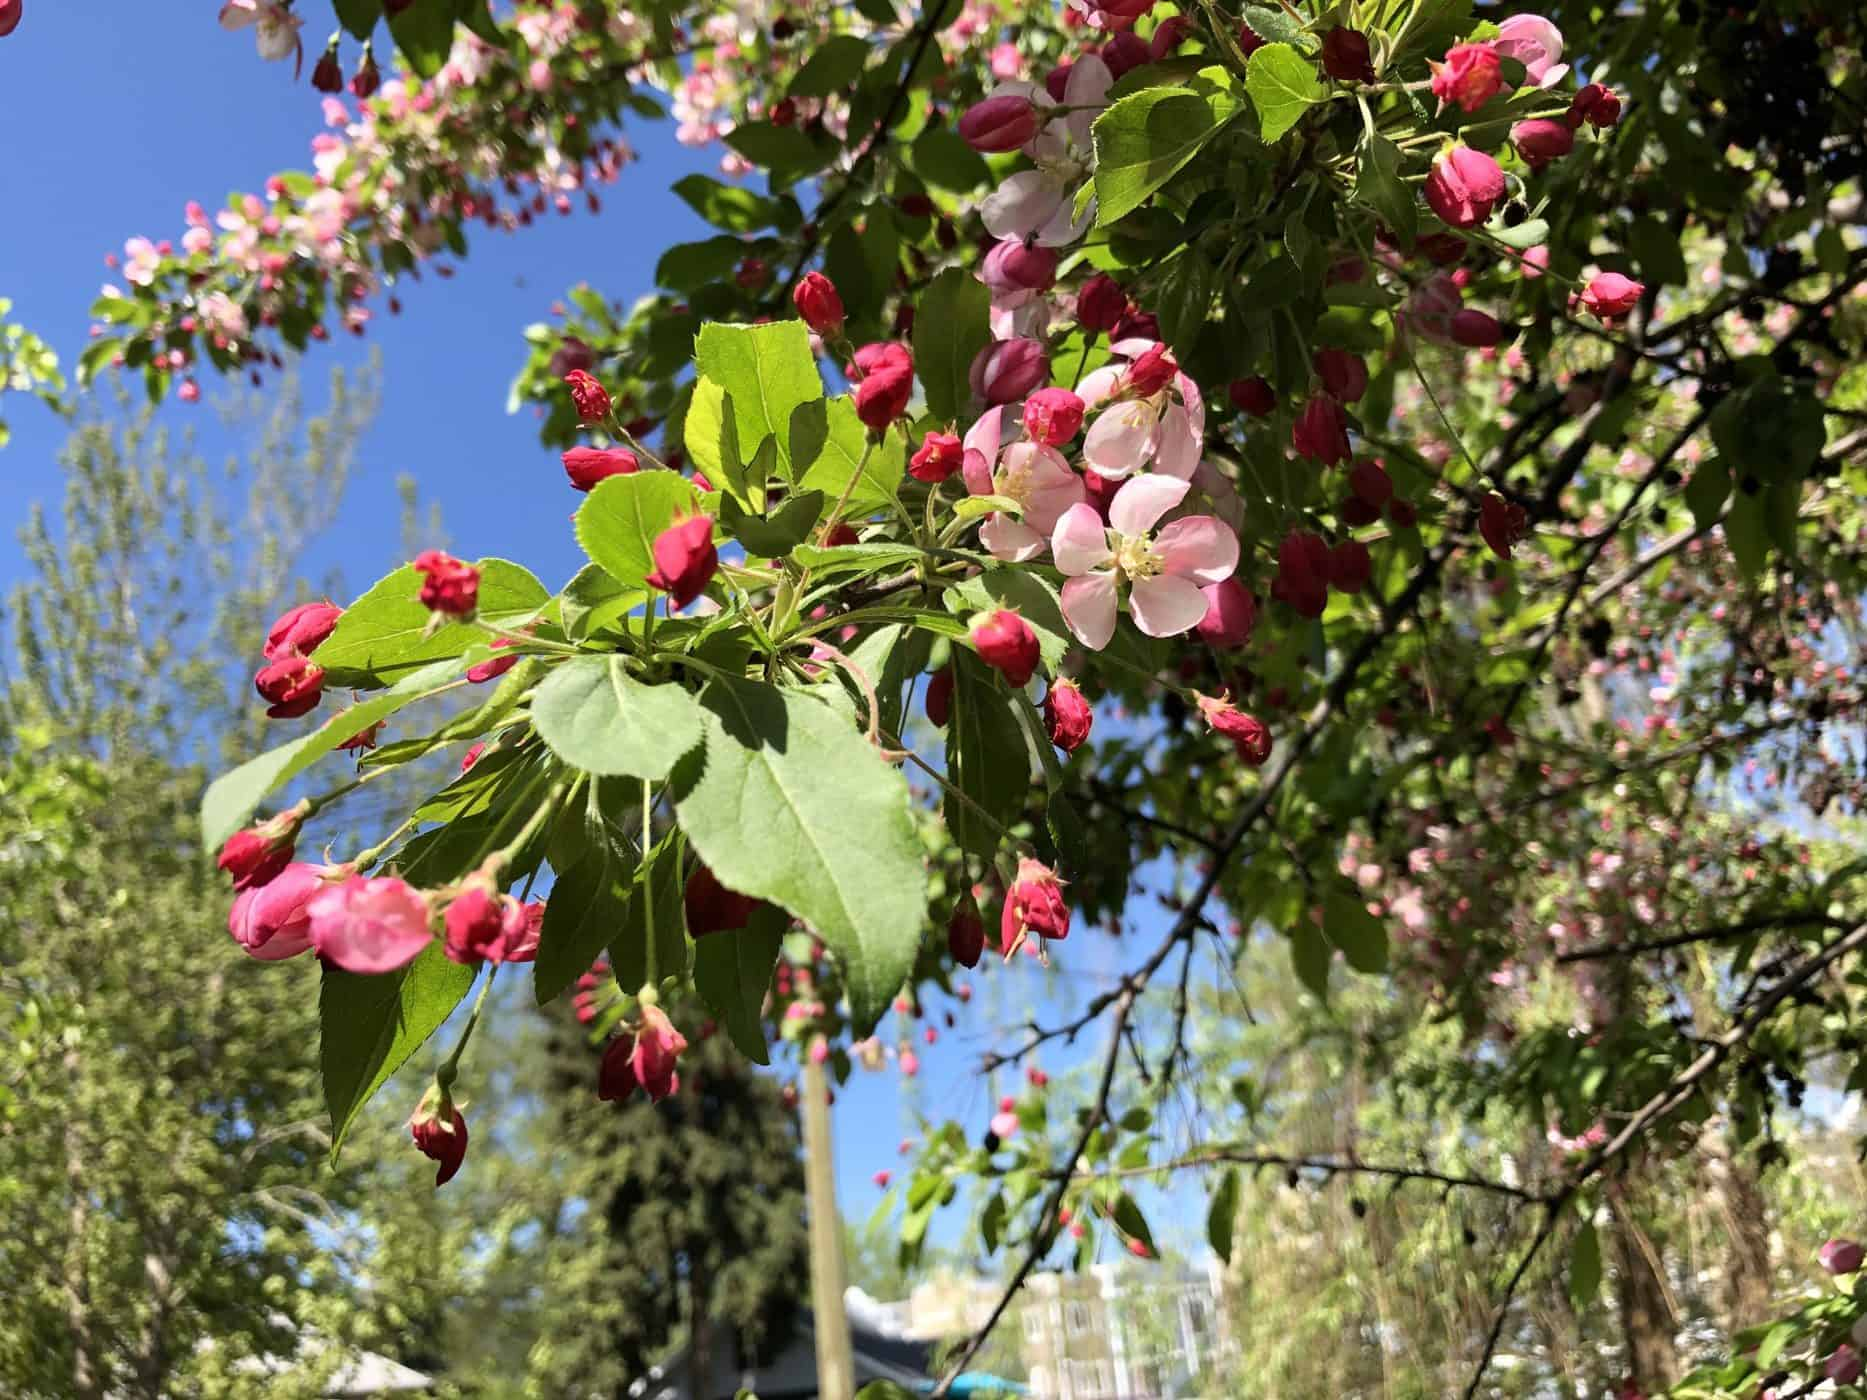 Sargent Crabapple - Foliage, Buds, Blooms of Branch in Spring